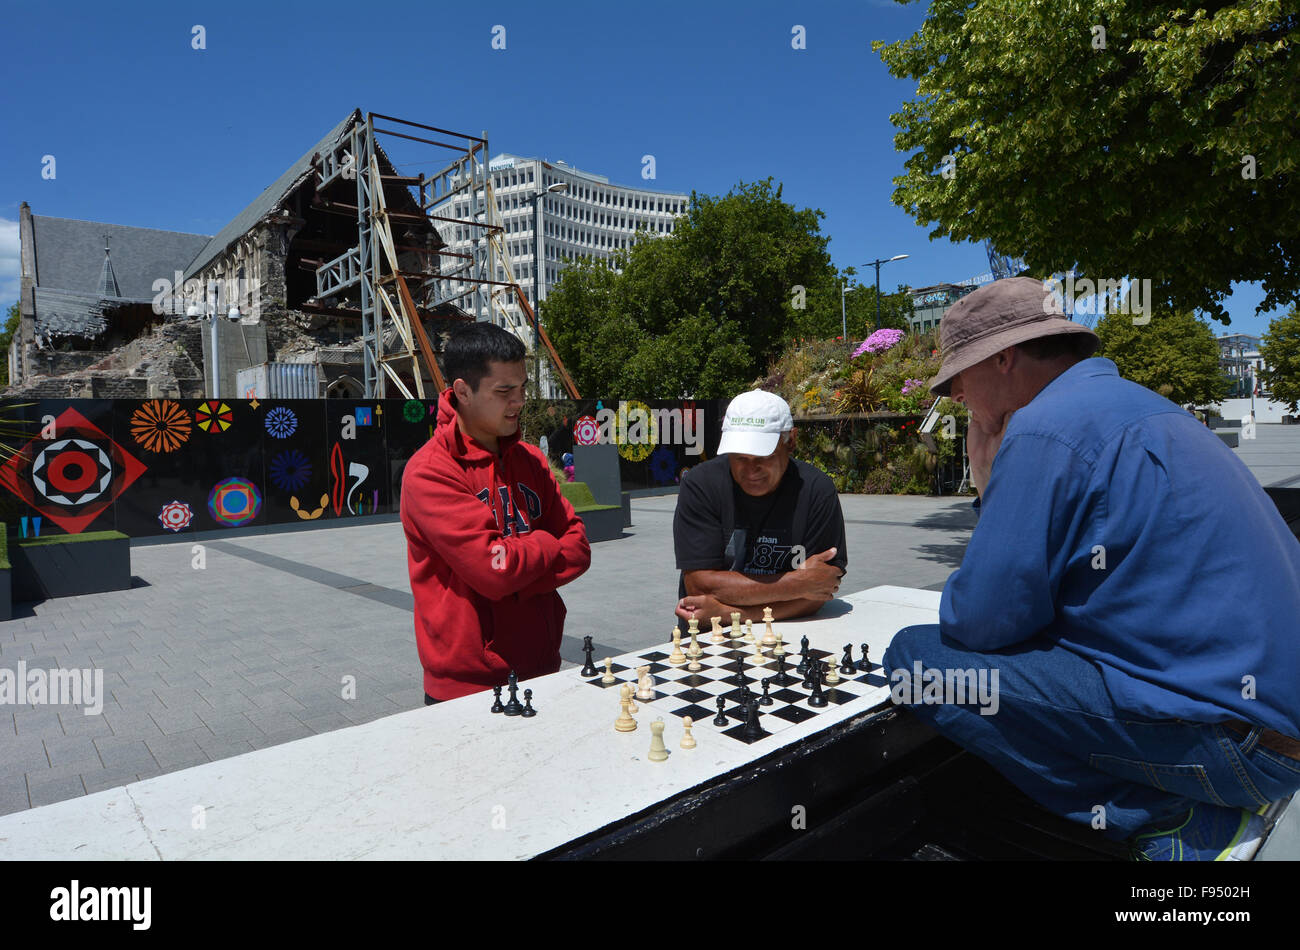 CHRISTCHURCH,  NZL - DEC 04 2015:People play Chess in Cathedral Square. About 600,000,000 (Six hundred million) - Stock Image